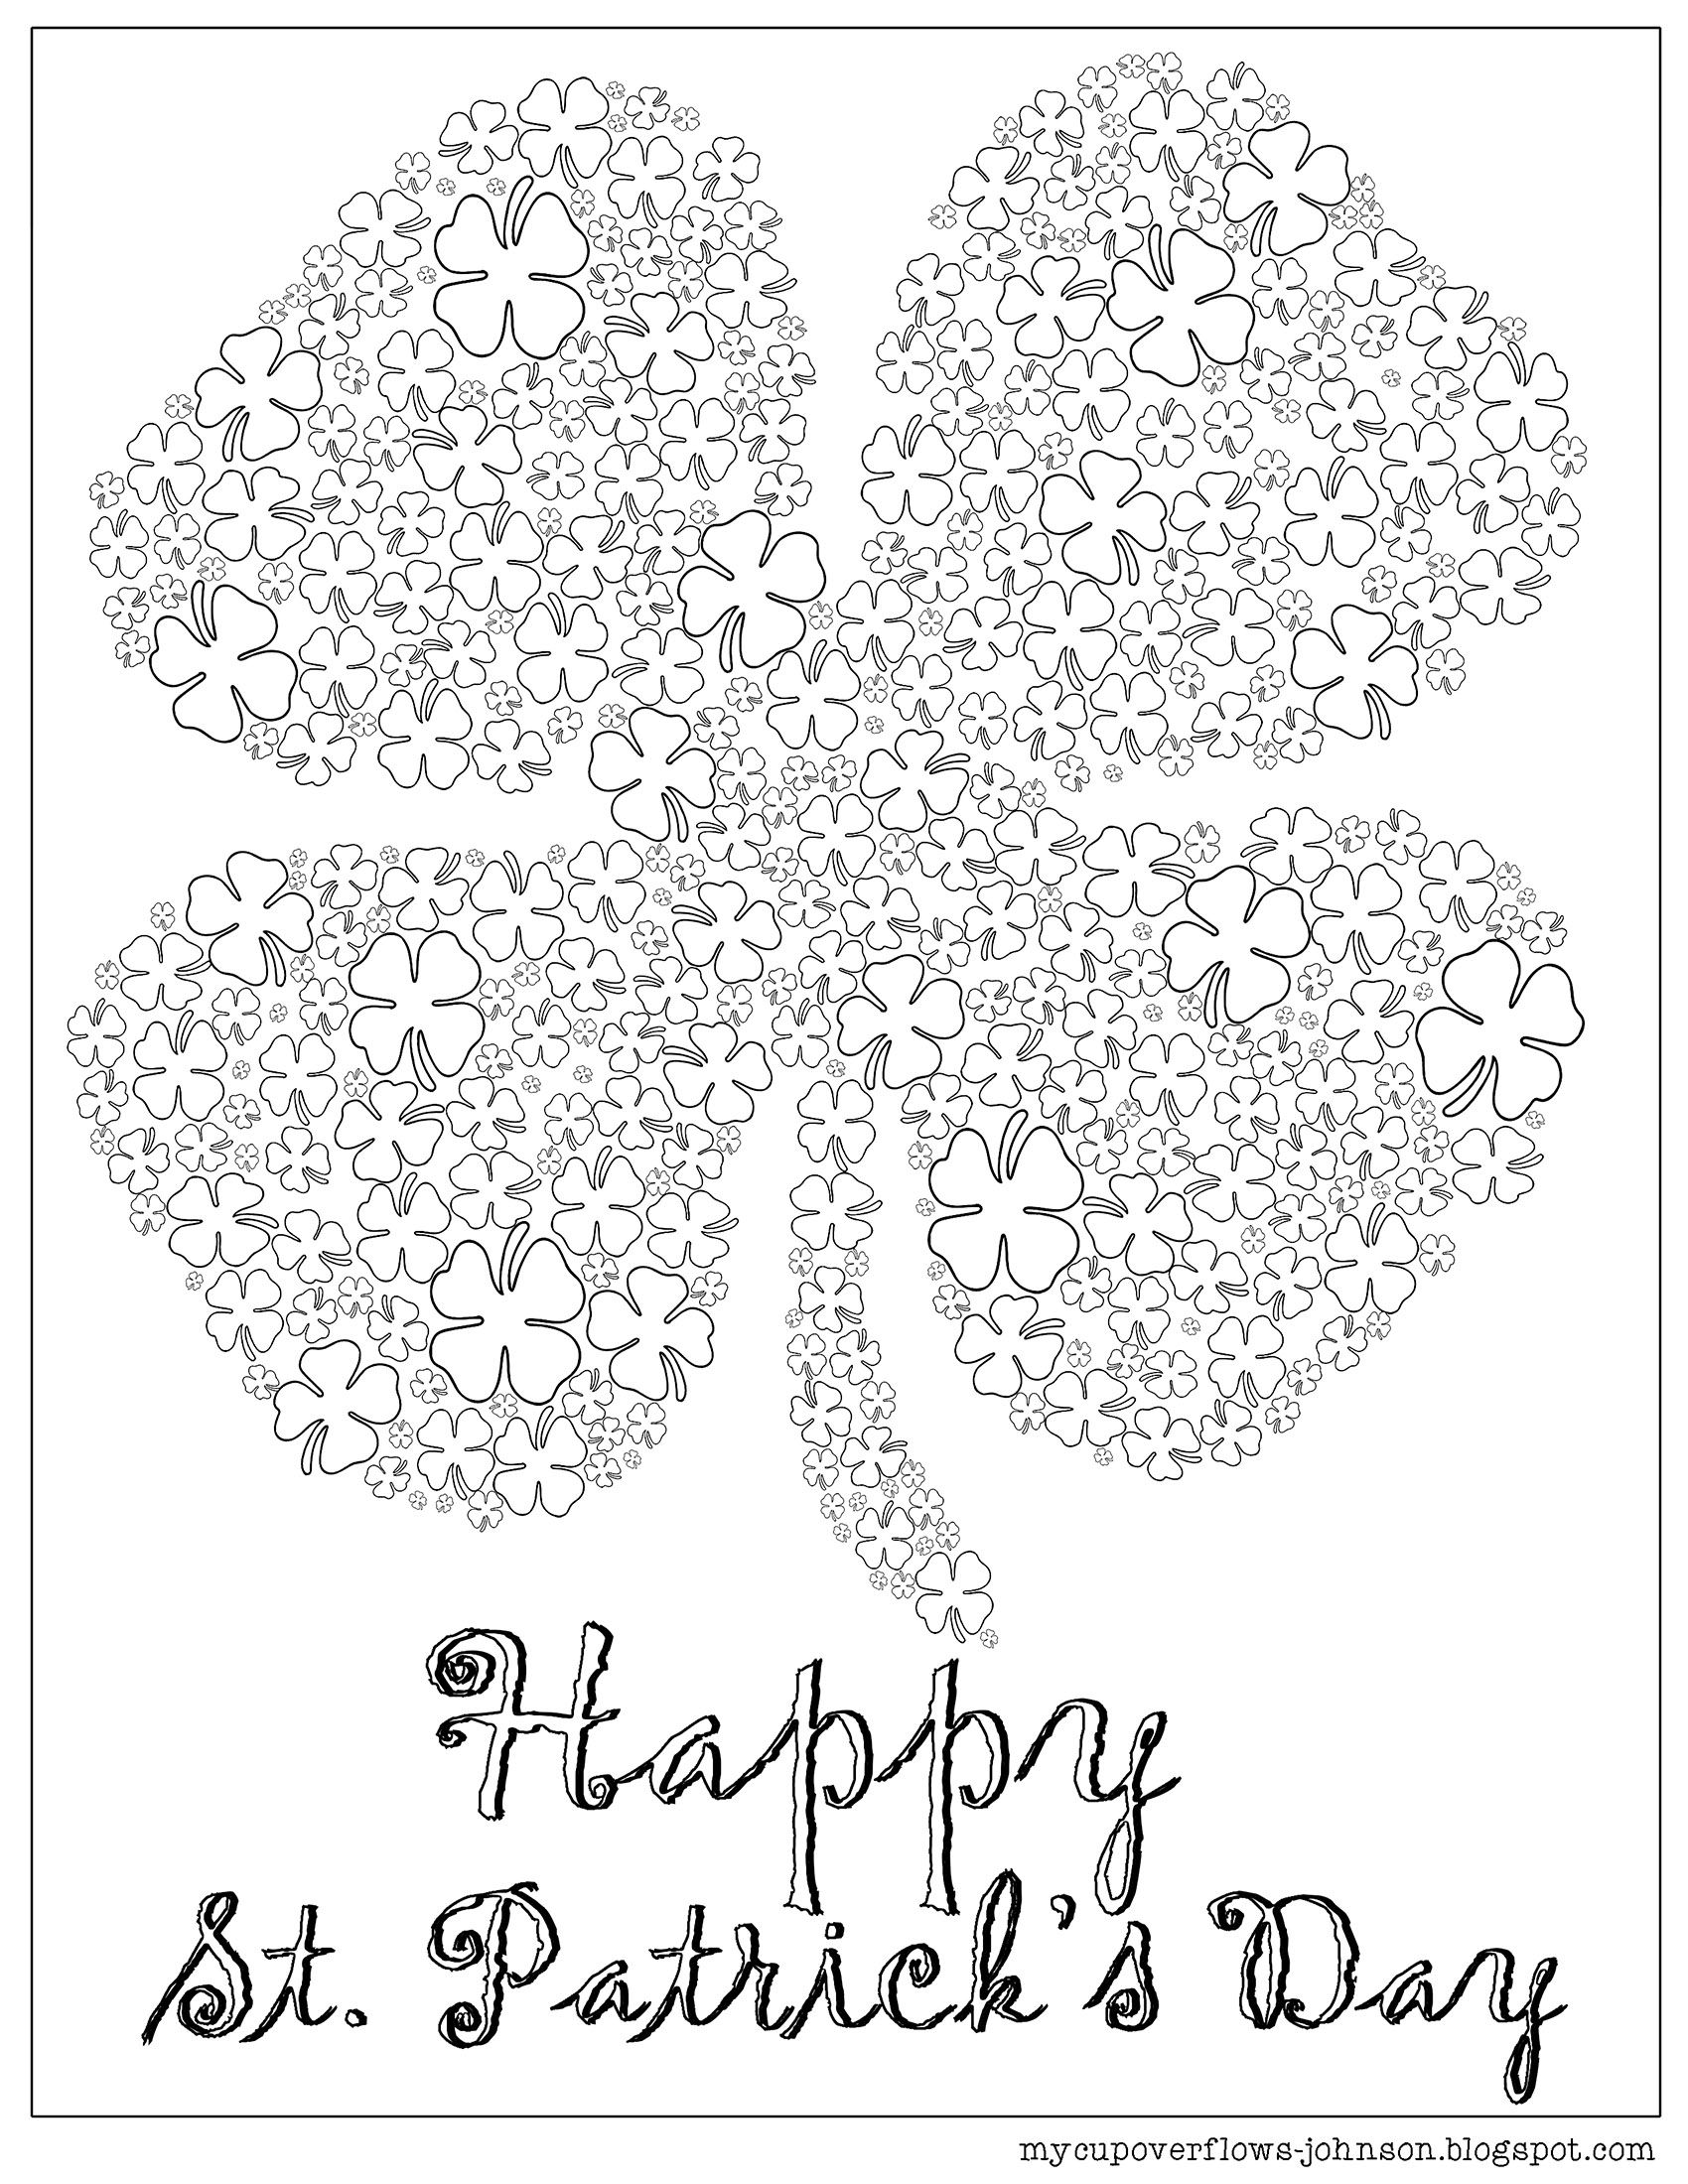 St Patrick S Day Coloring Pages Easter Art Project St Patricks Day Crafts For Kids Coloring Pages [ 2200 x 1700 Pixel ]